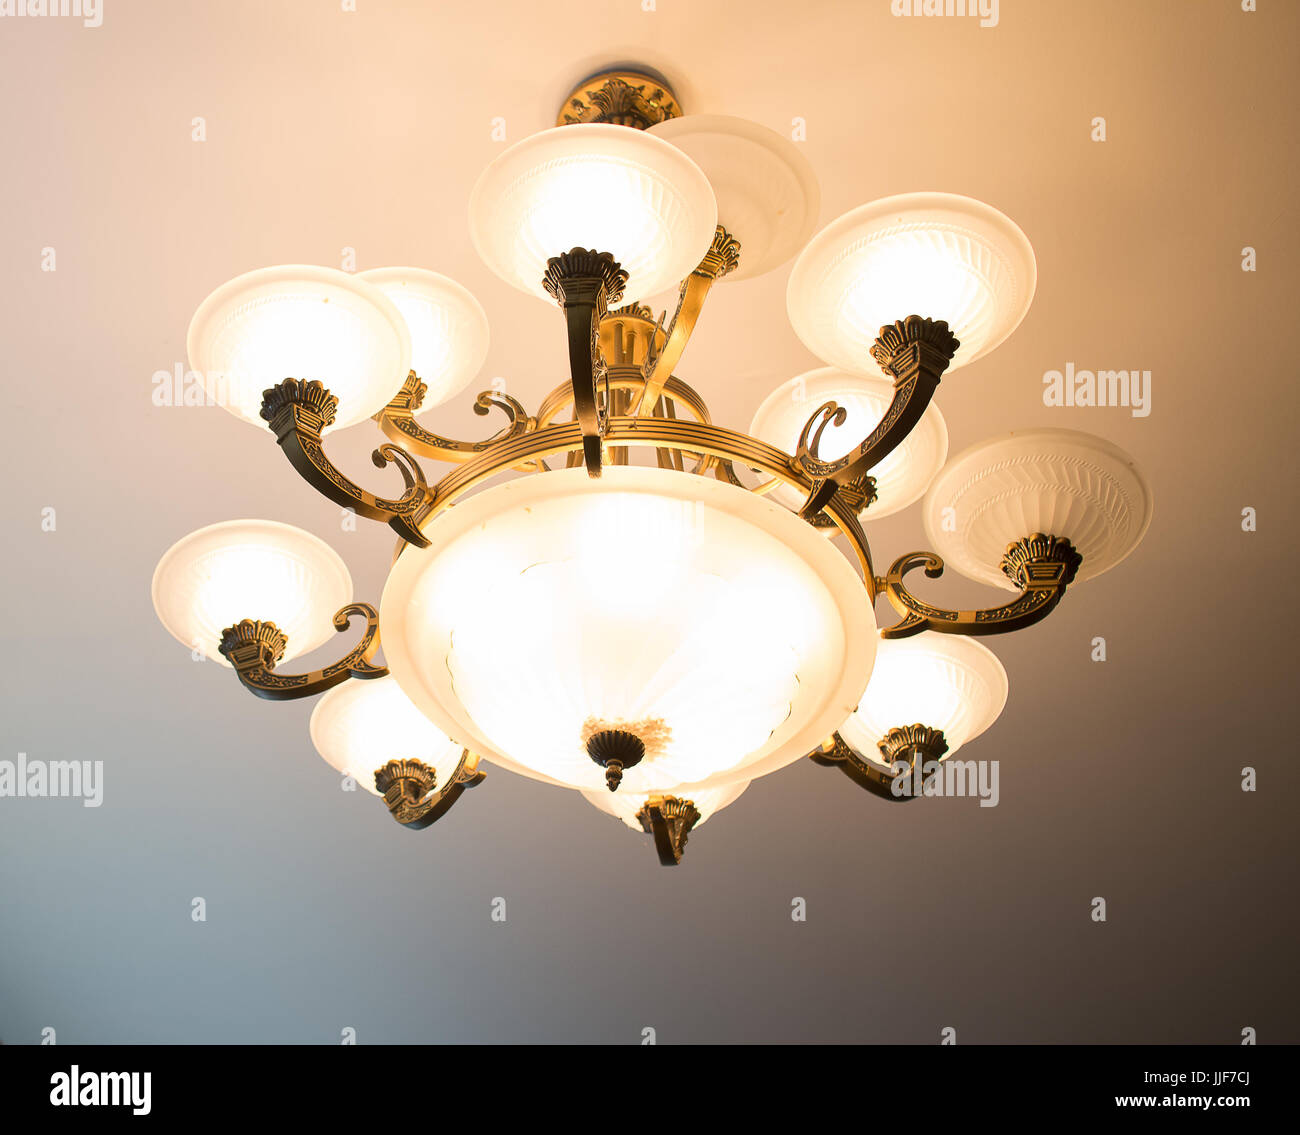 Home interiors Chandelier on ceiling(turn on the light) - Stock Image